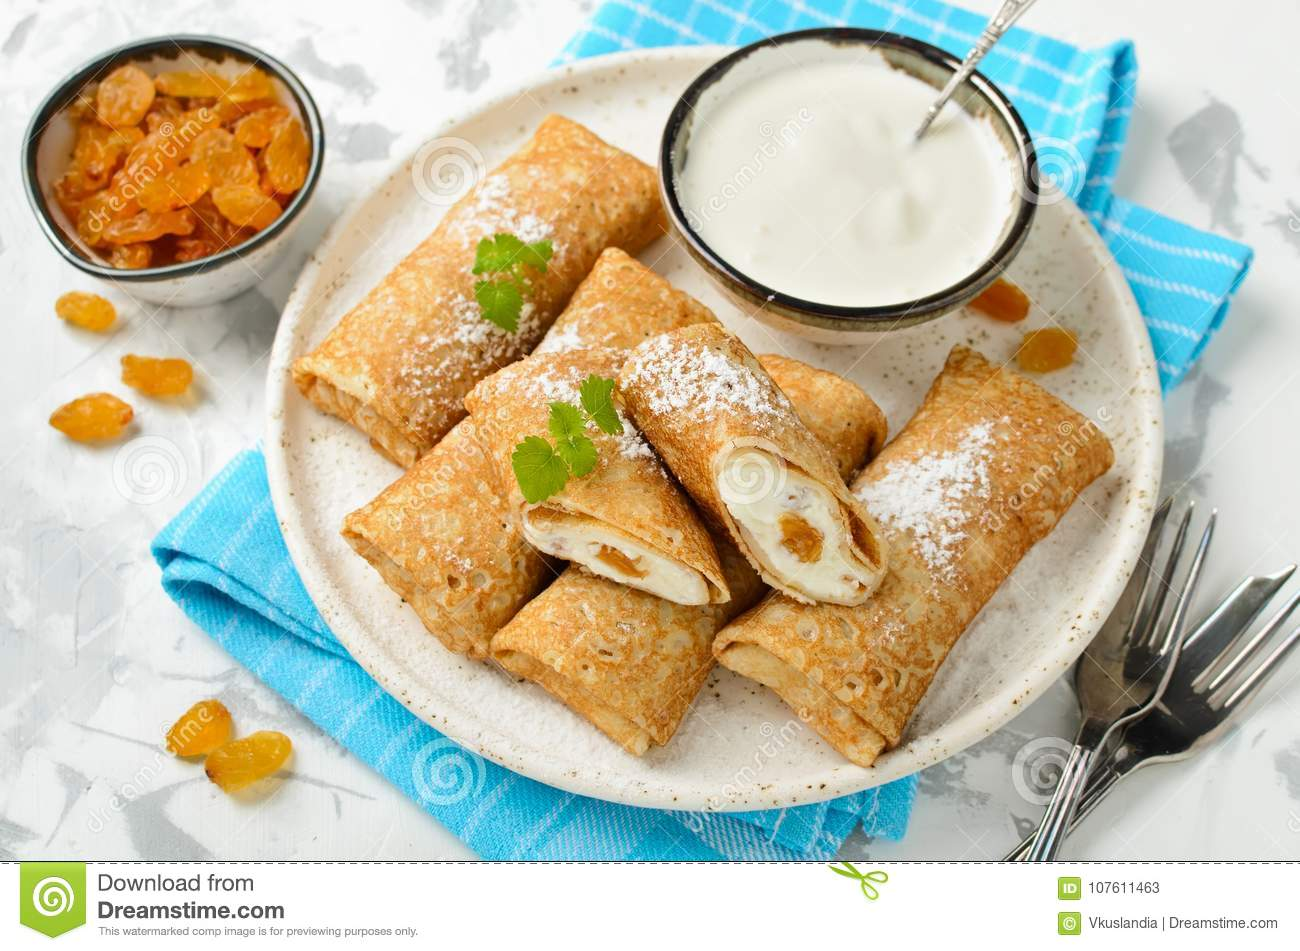 Stuffed pancakes - a delicious dish of Russian cuisine 1